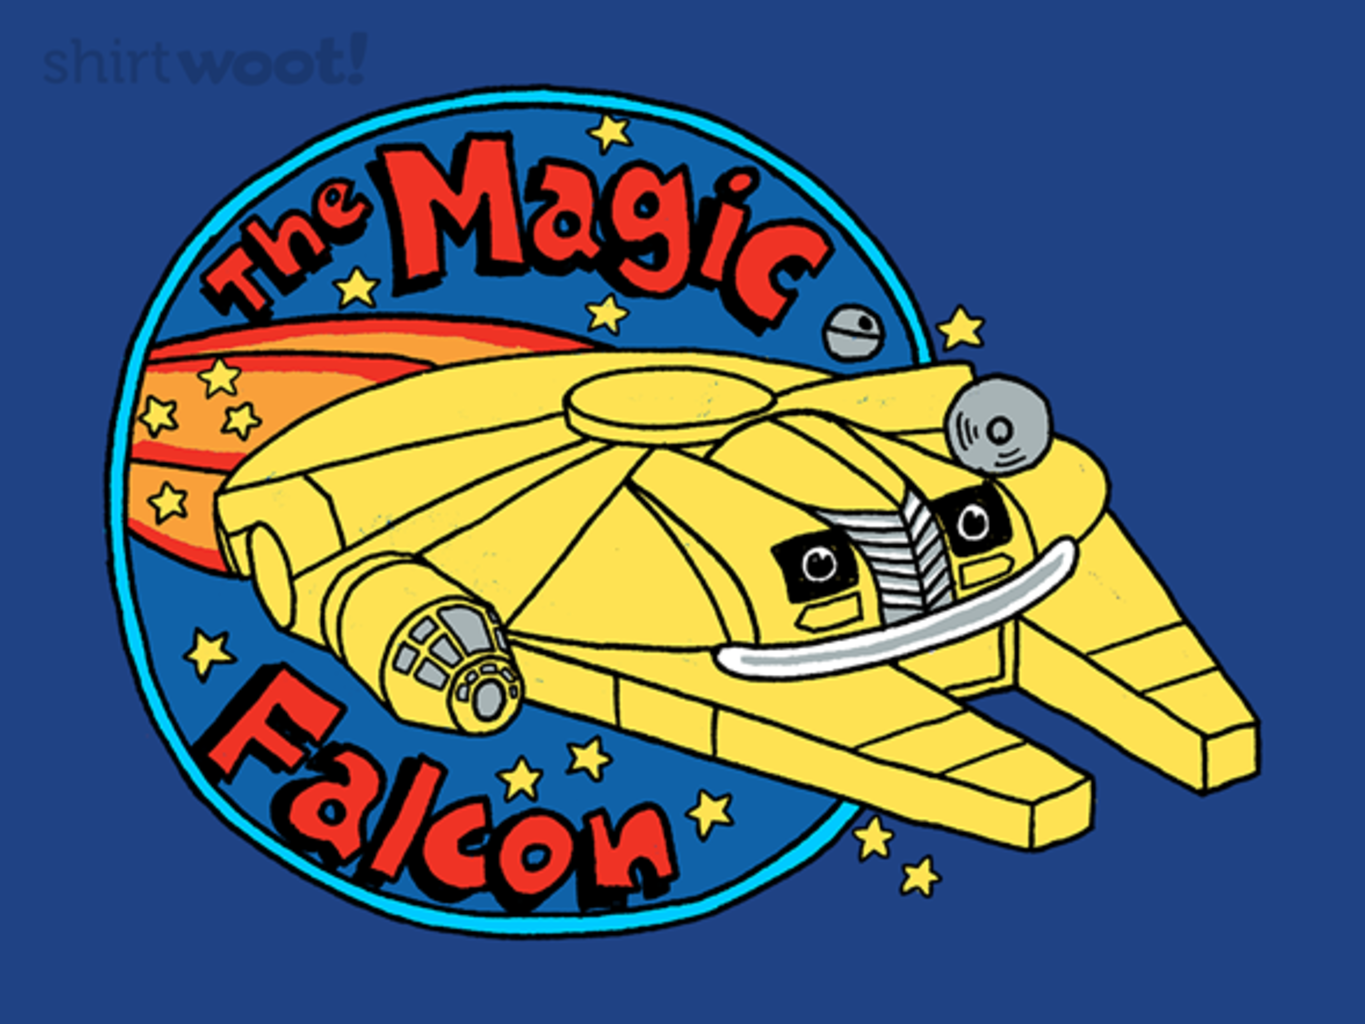 Woot!: The Magic Falcon